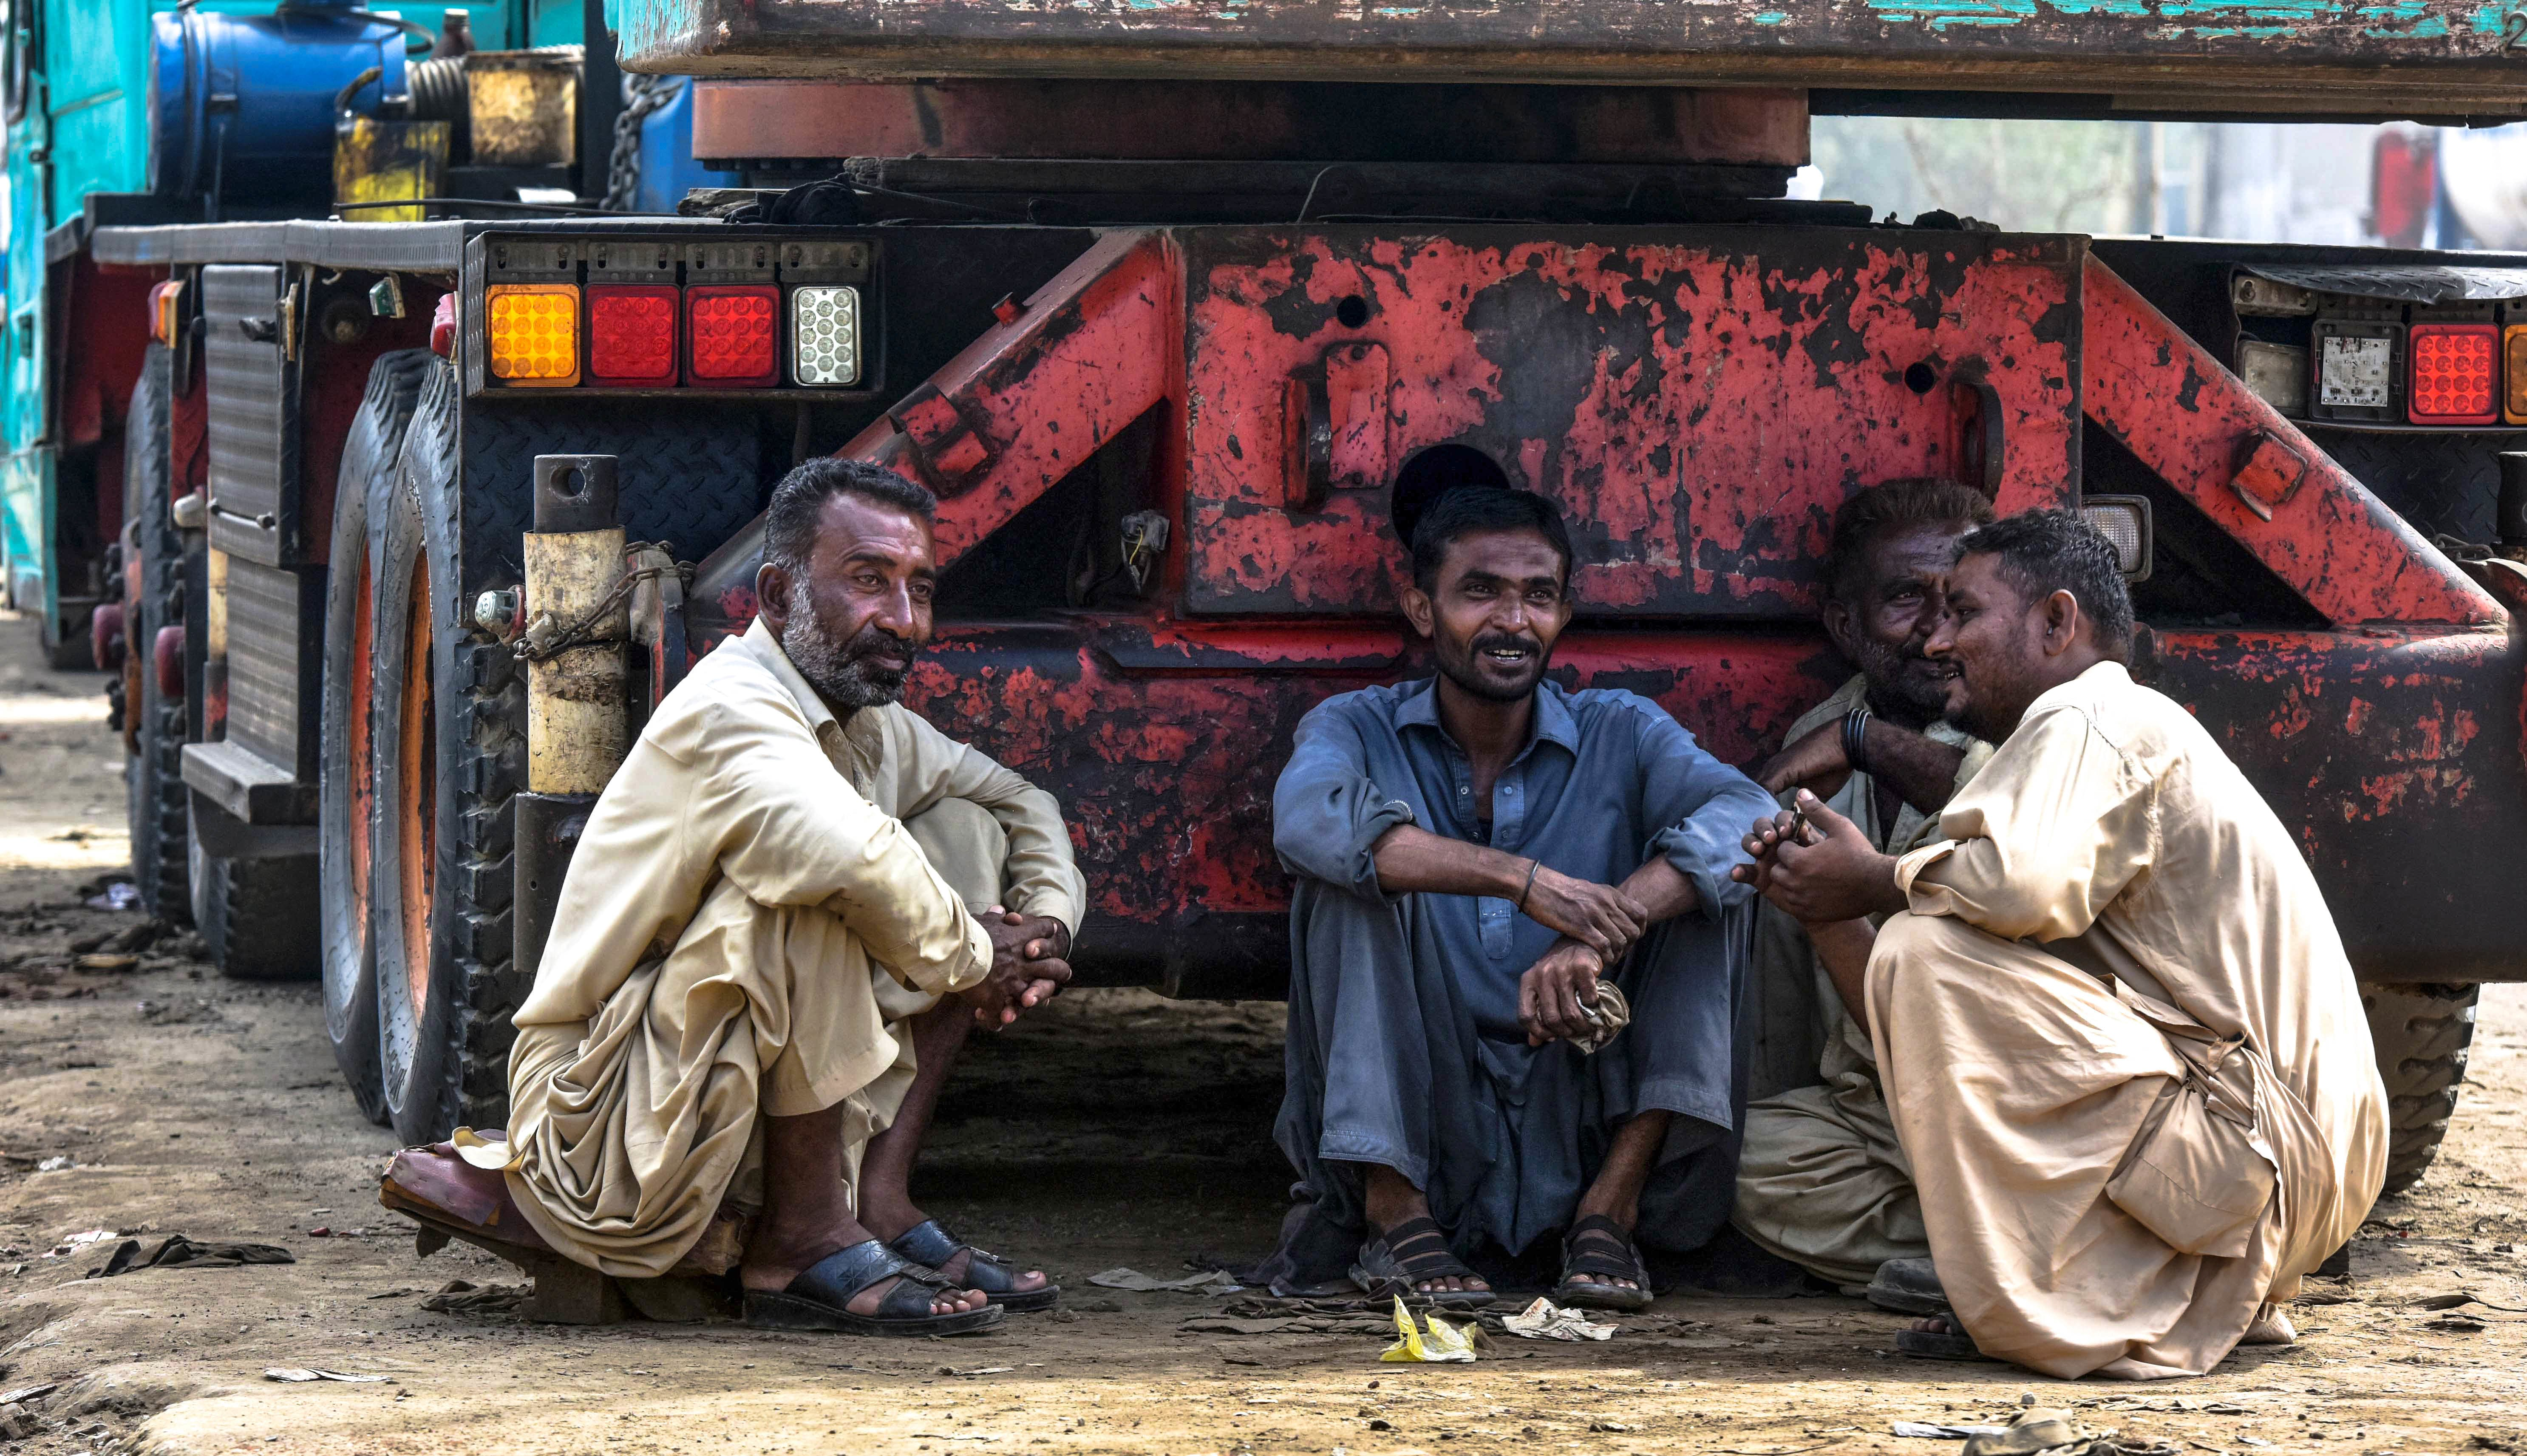 Four labourers sit in the shade of a truck